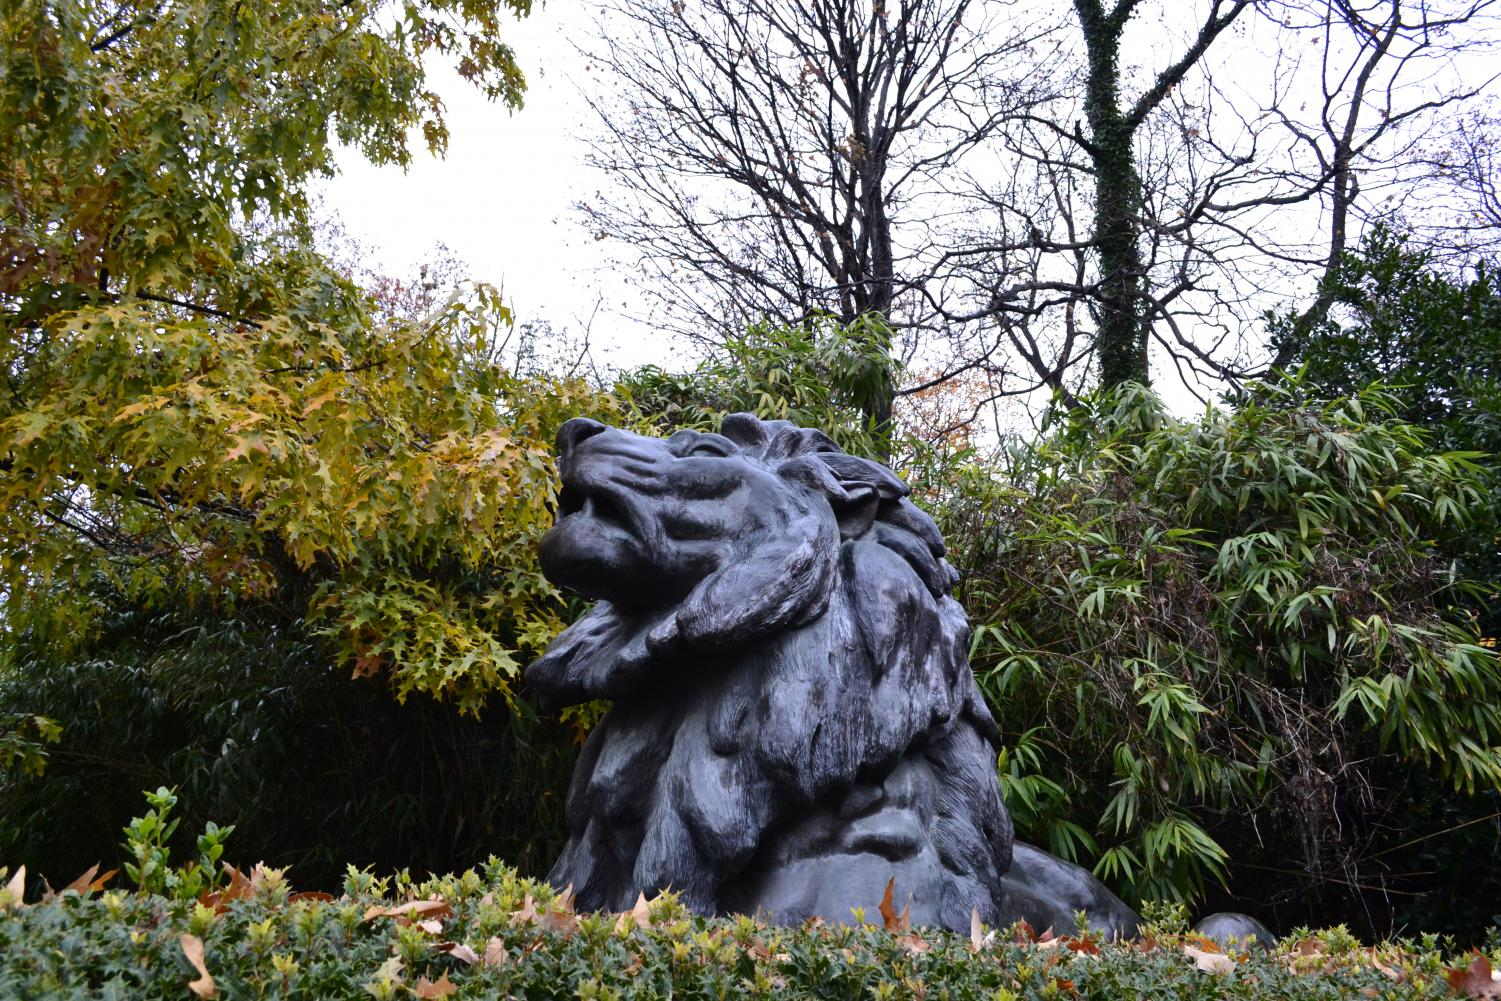 Lion at the entrance of the zoo.